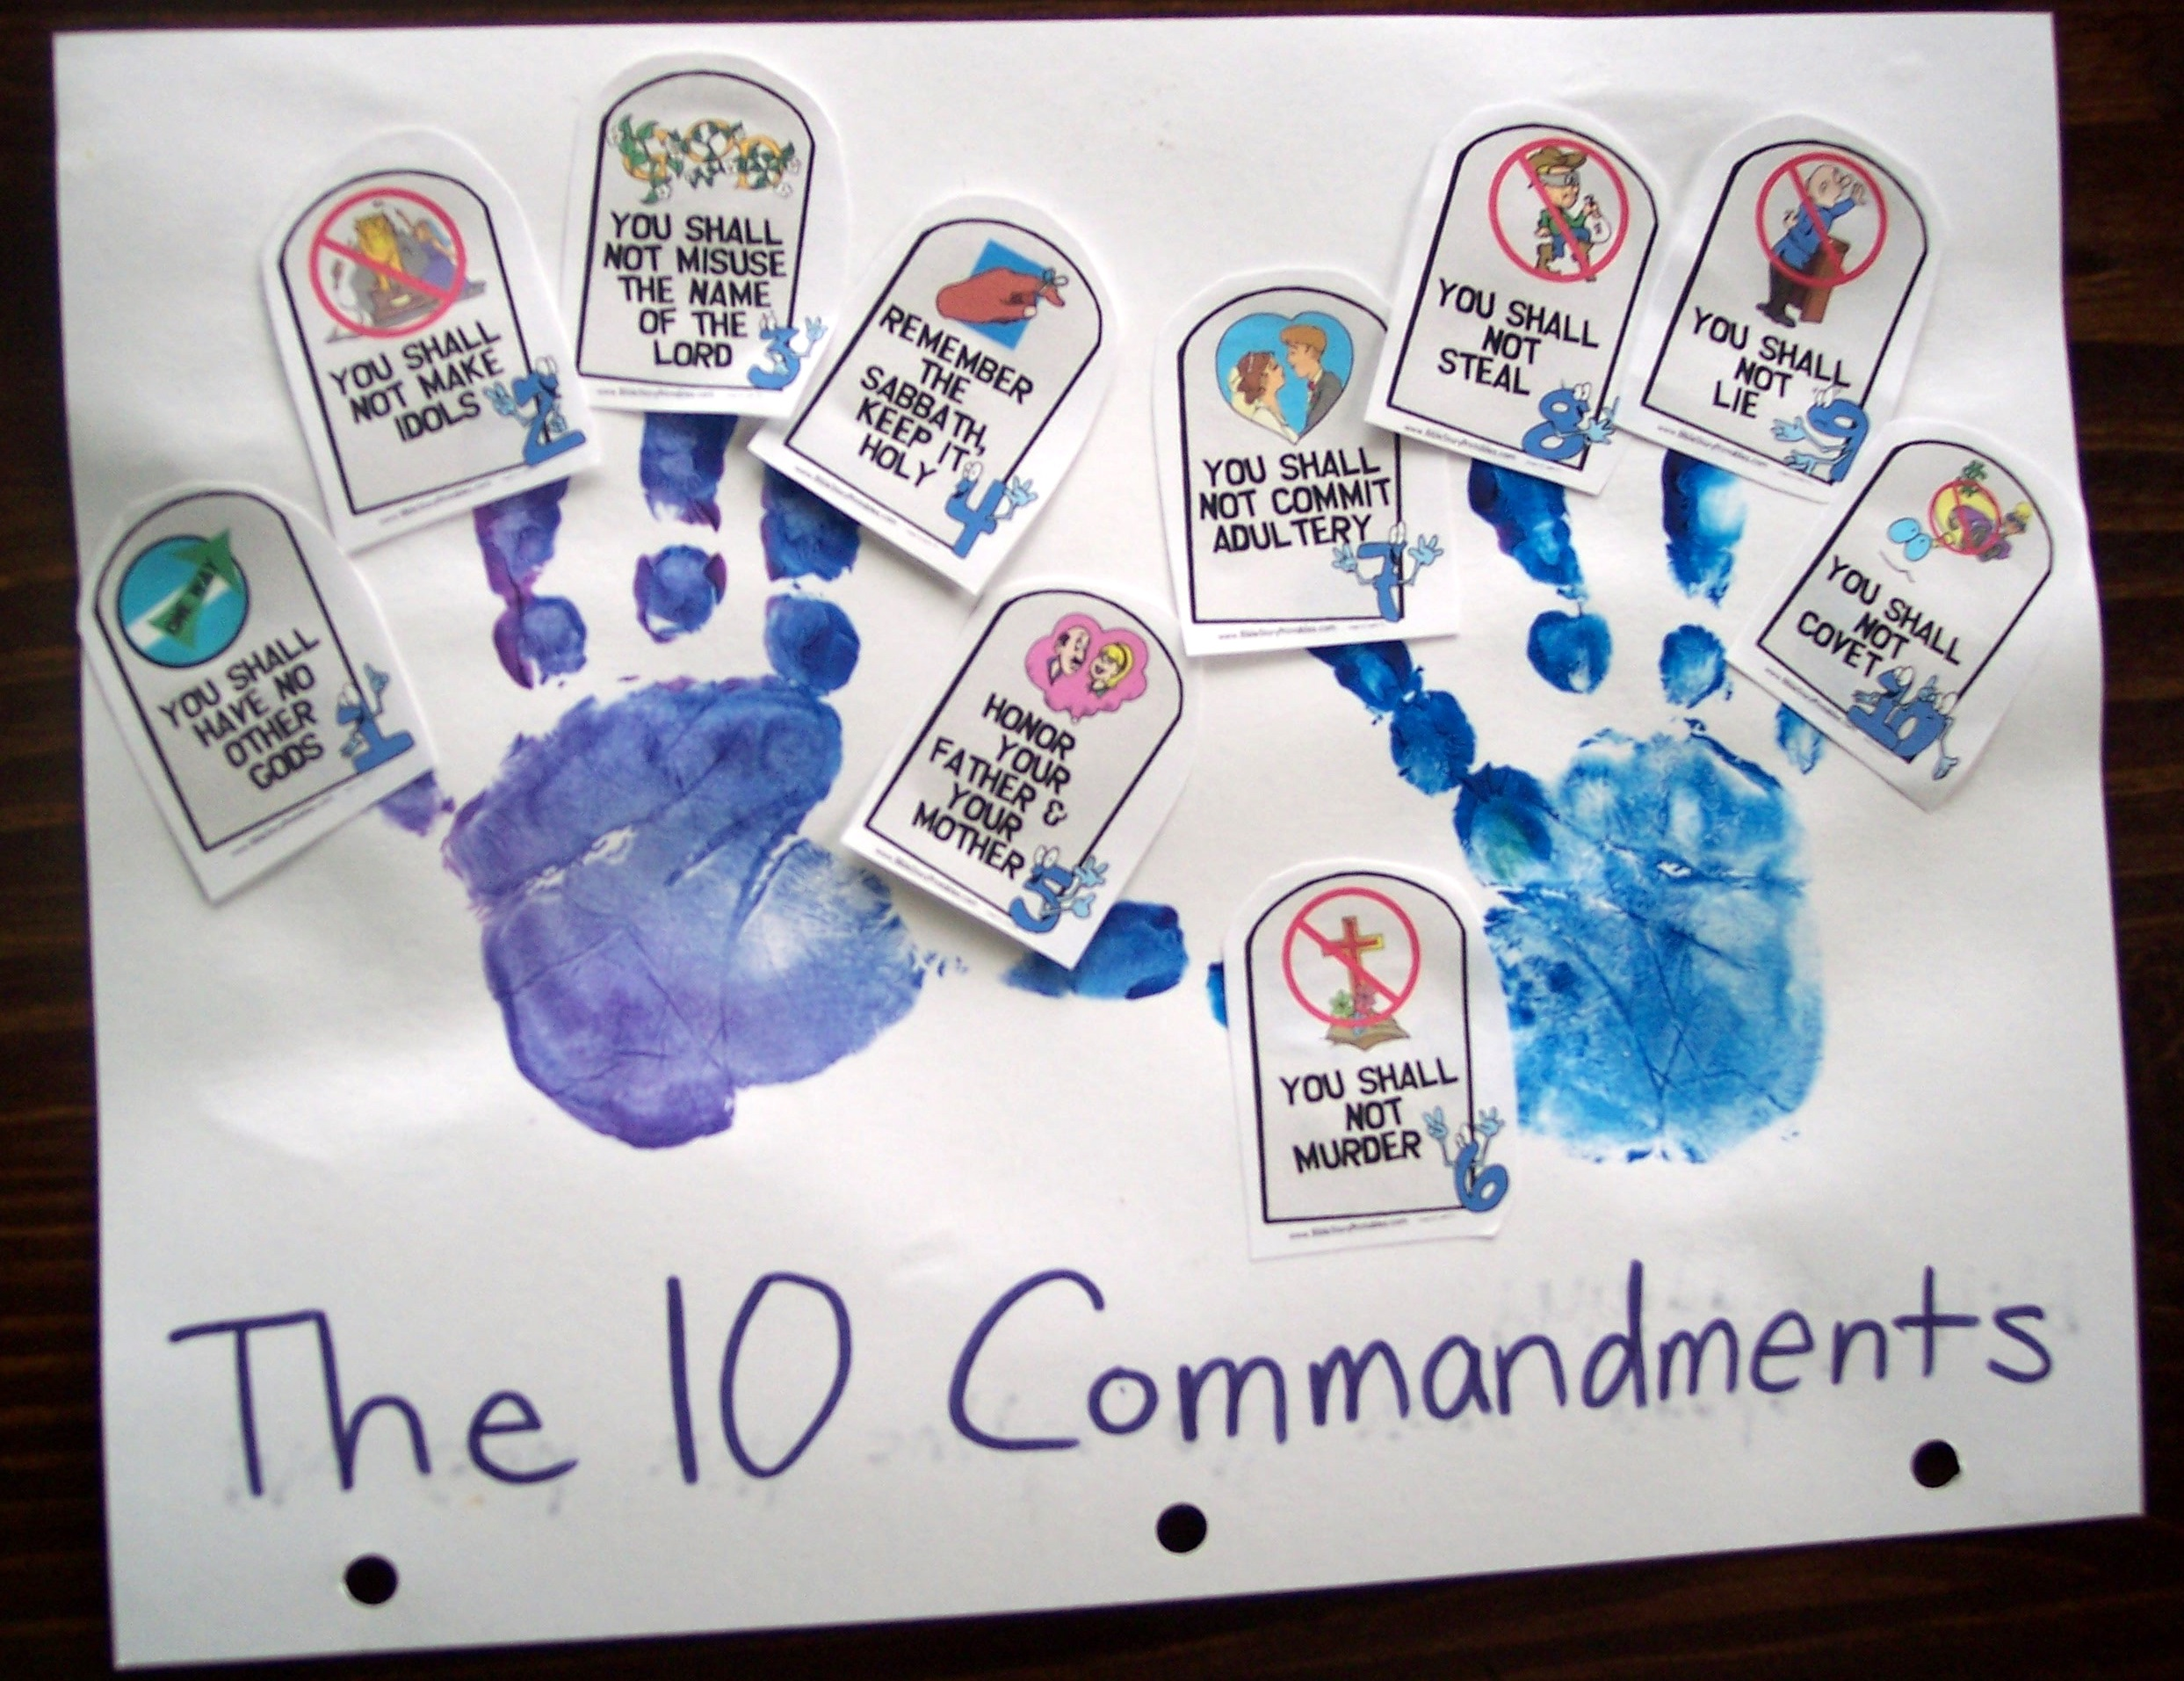 Train Up A Child 10 Commandments Pt 2